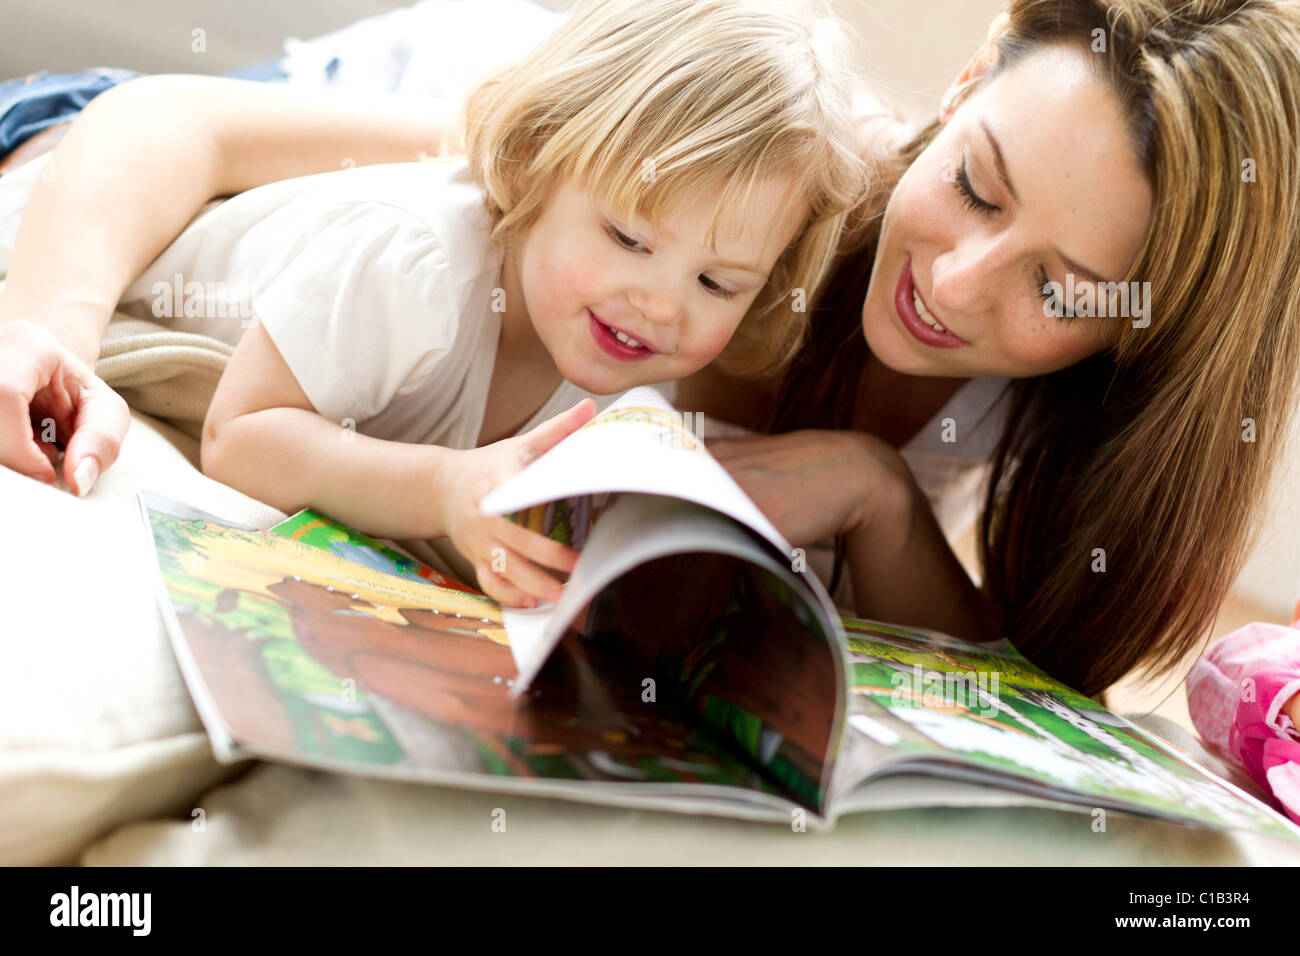 Mother and child reading - Stock Image